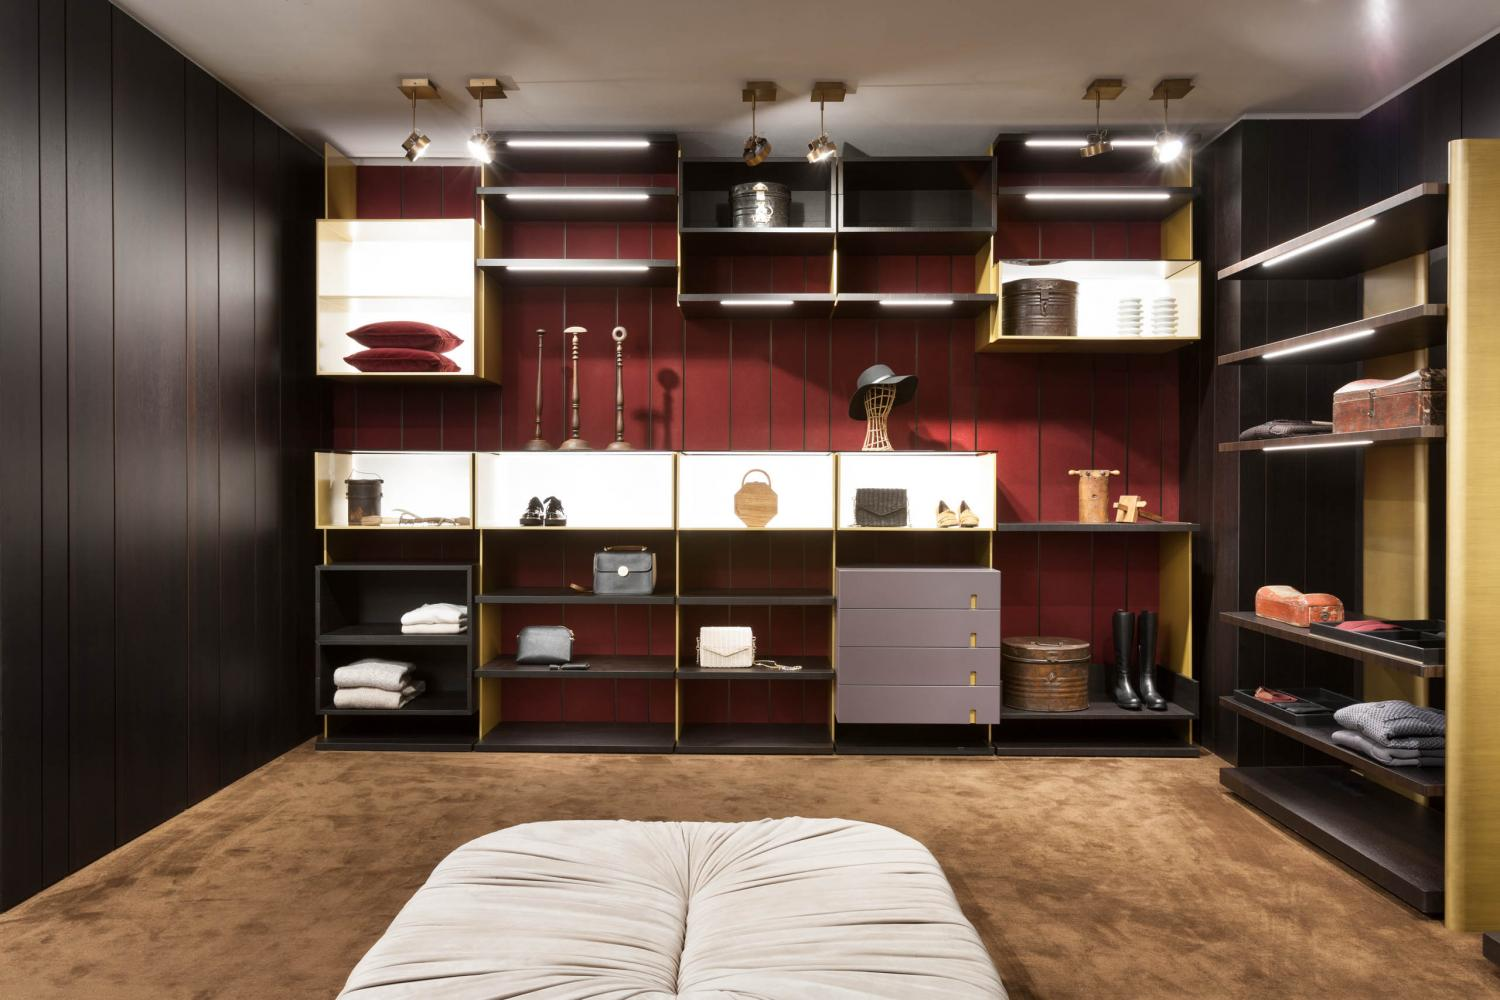 laurameroni custom made line walk-in closet system in heat-treated oak and lacquered brass finish